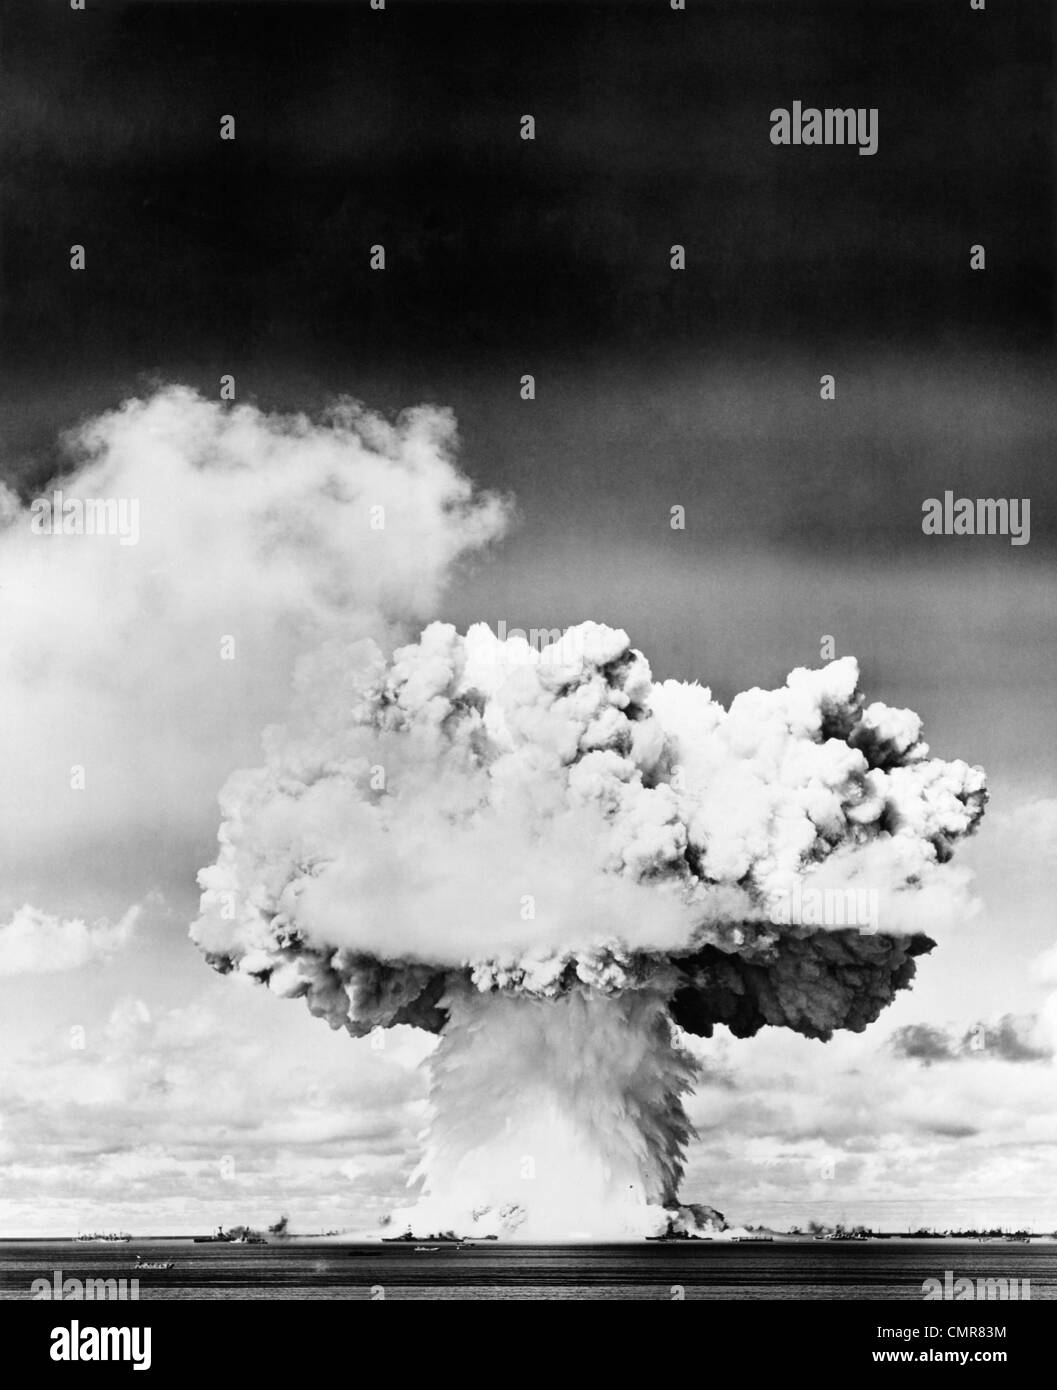 1940s 1950s ATOMIC BOMB EXPLOSION MUSHROOM CLOUD Stock Photo